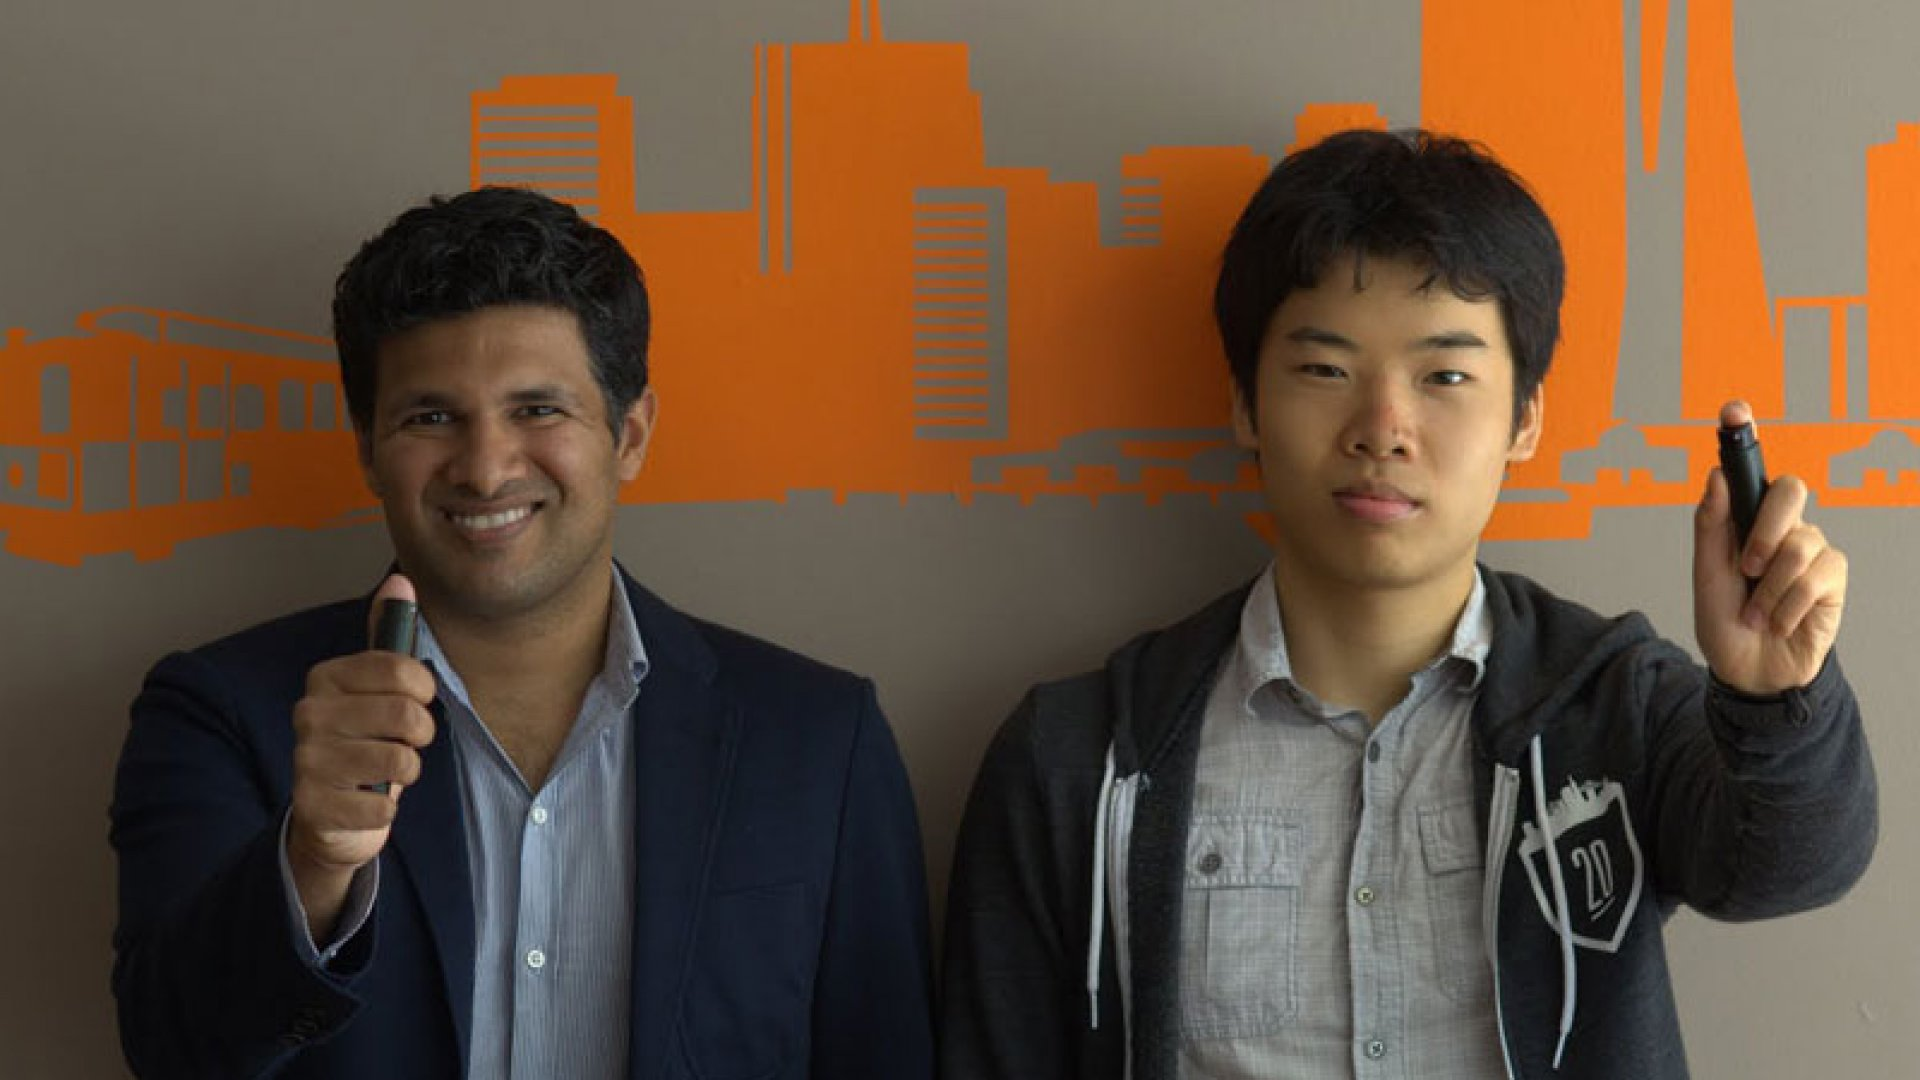 Sprayable co-founders Deven Soni and Ben Yu.